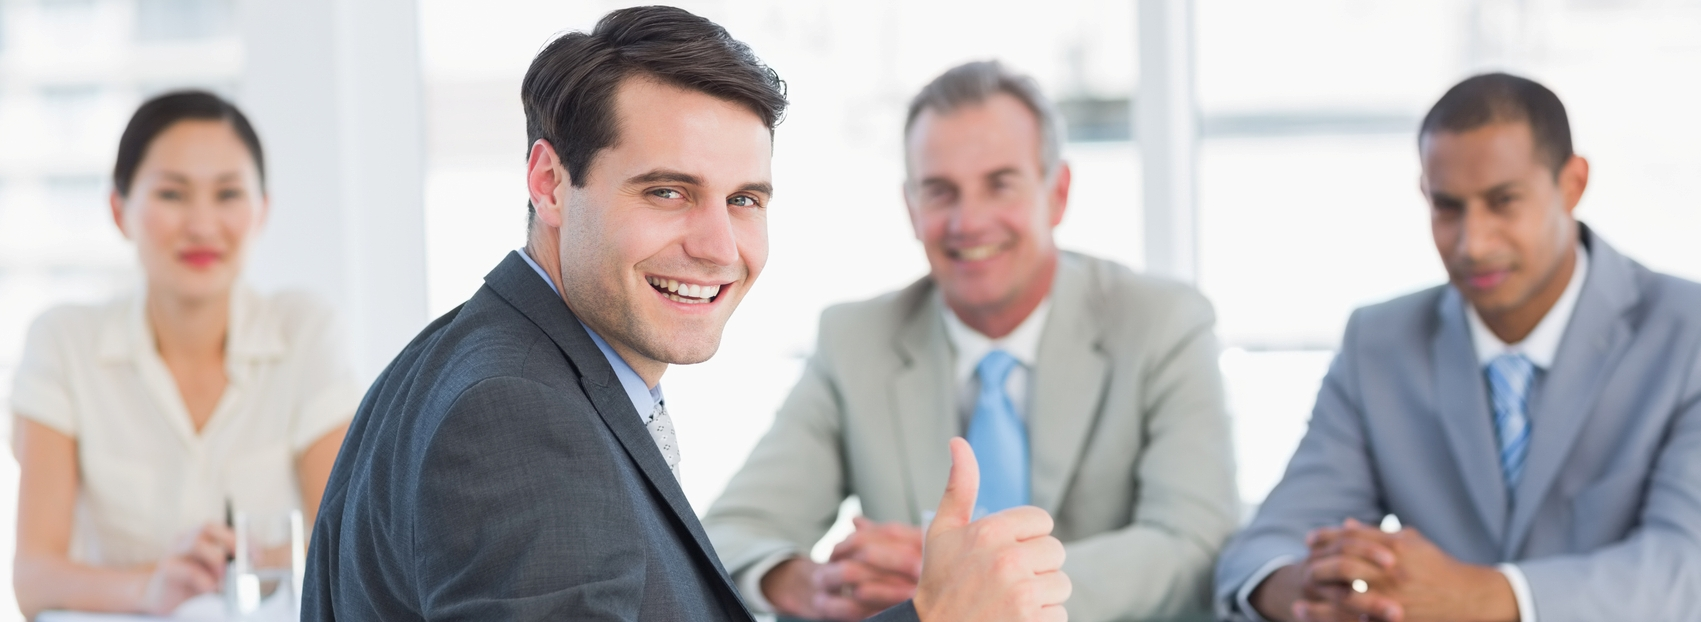 Interview coaching Services New Zealand